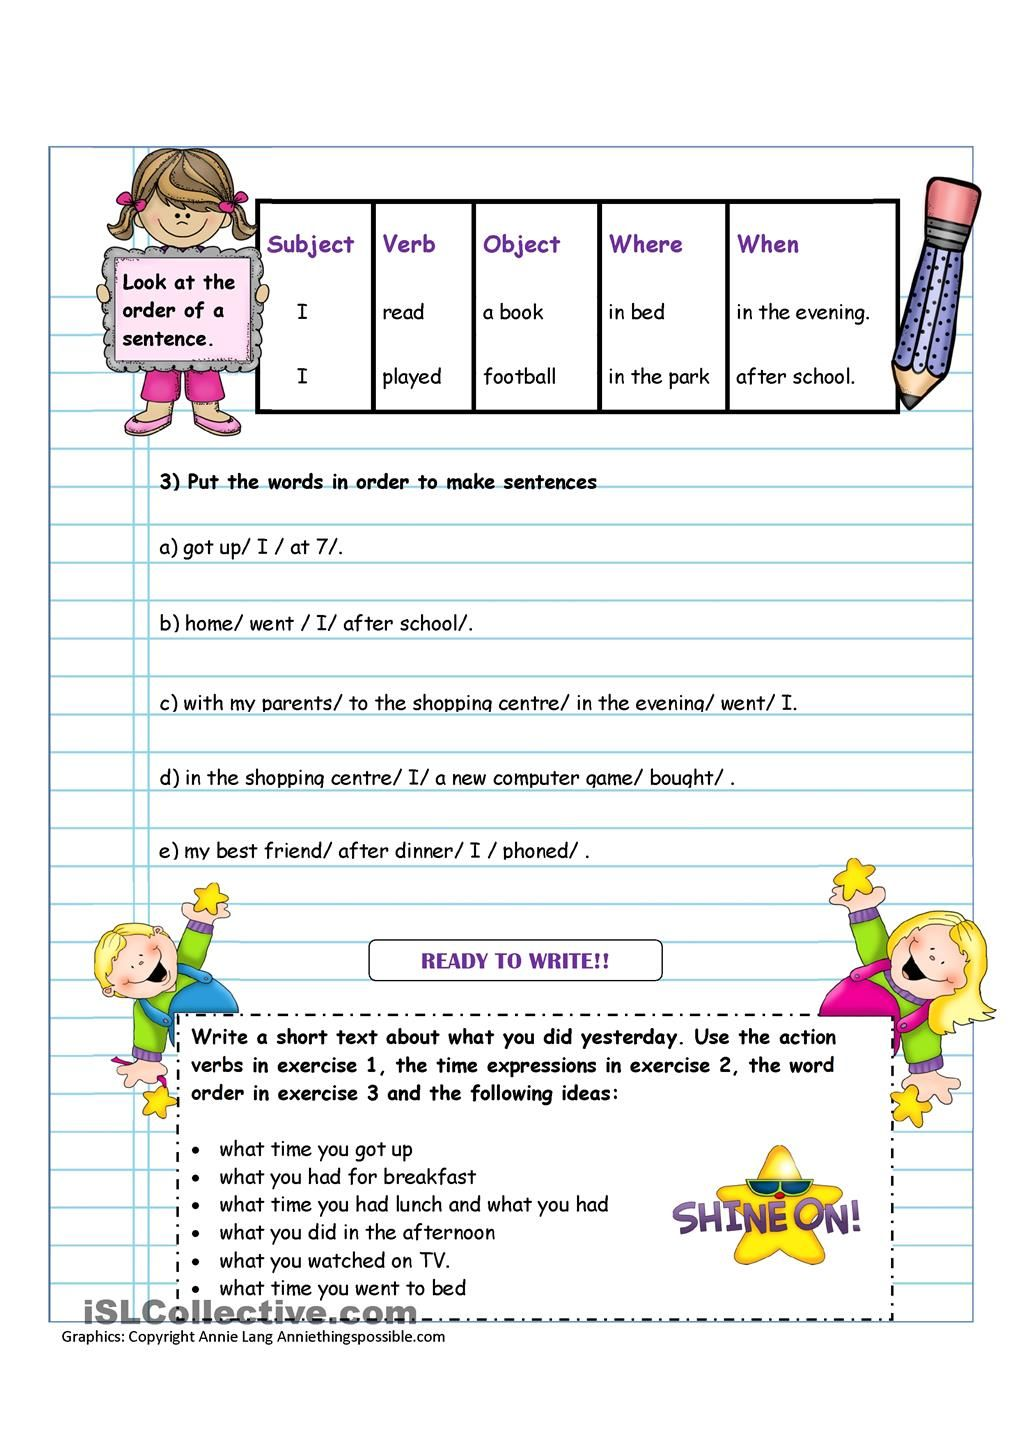 Writing What You Did Yesterday English Activities For Kids Writing Skills Writing [ 1440 x 1018 Pixel ]